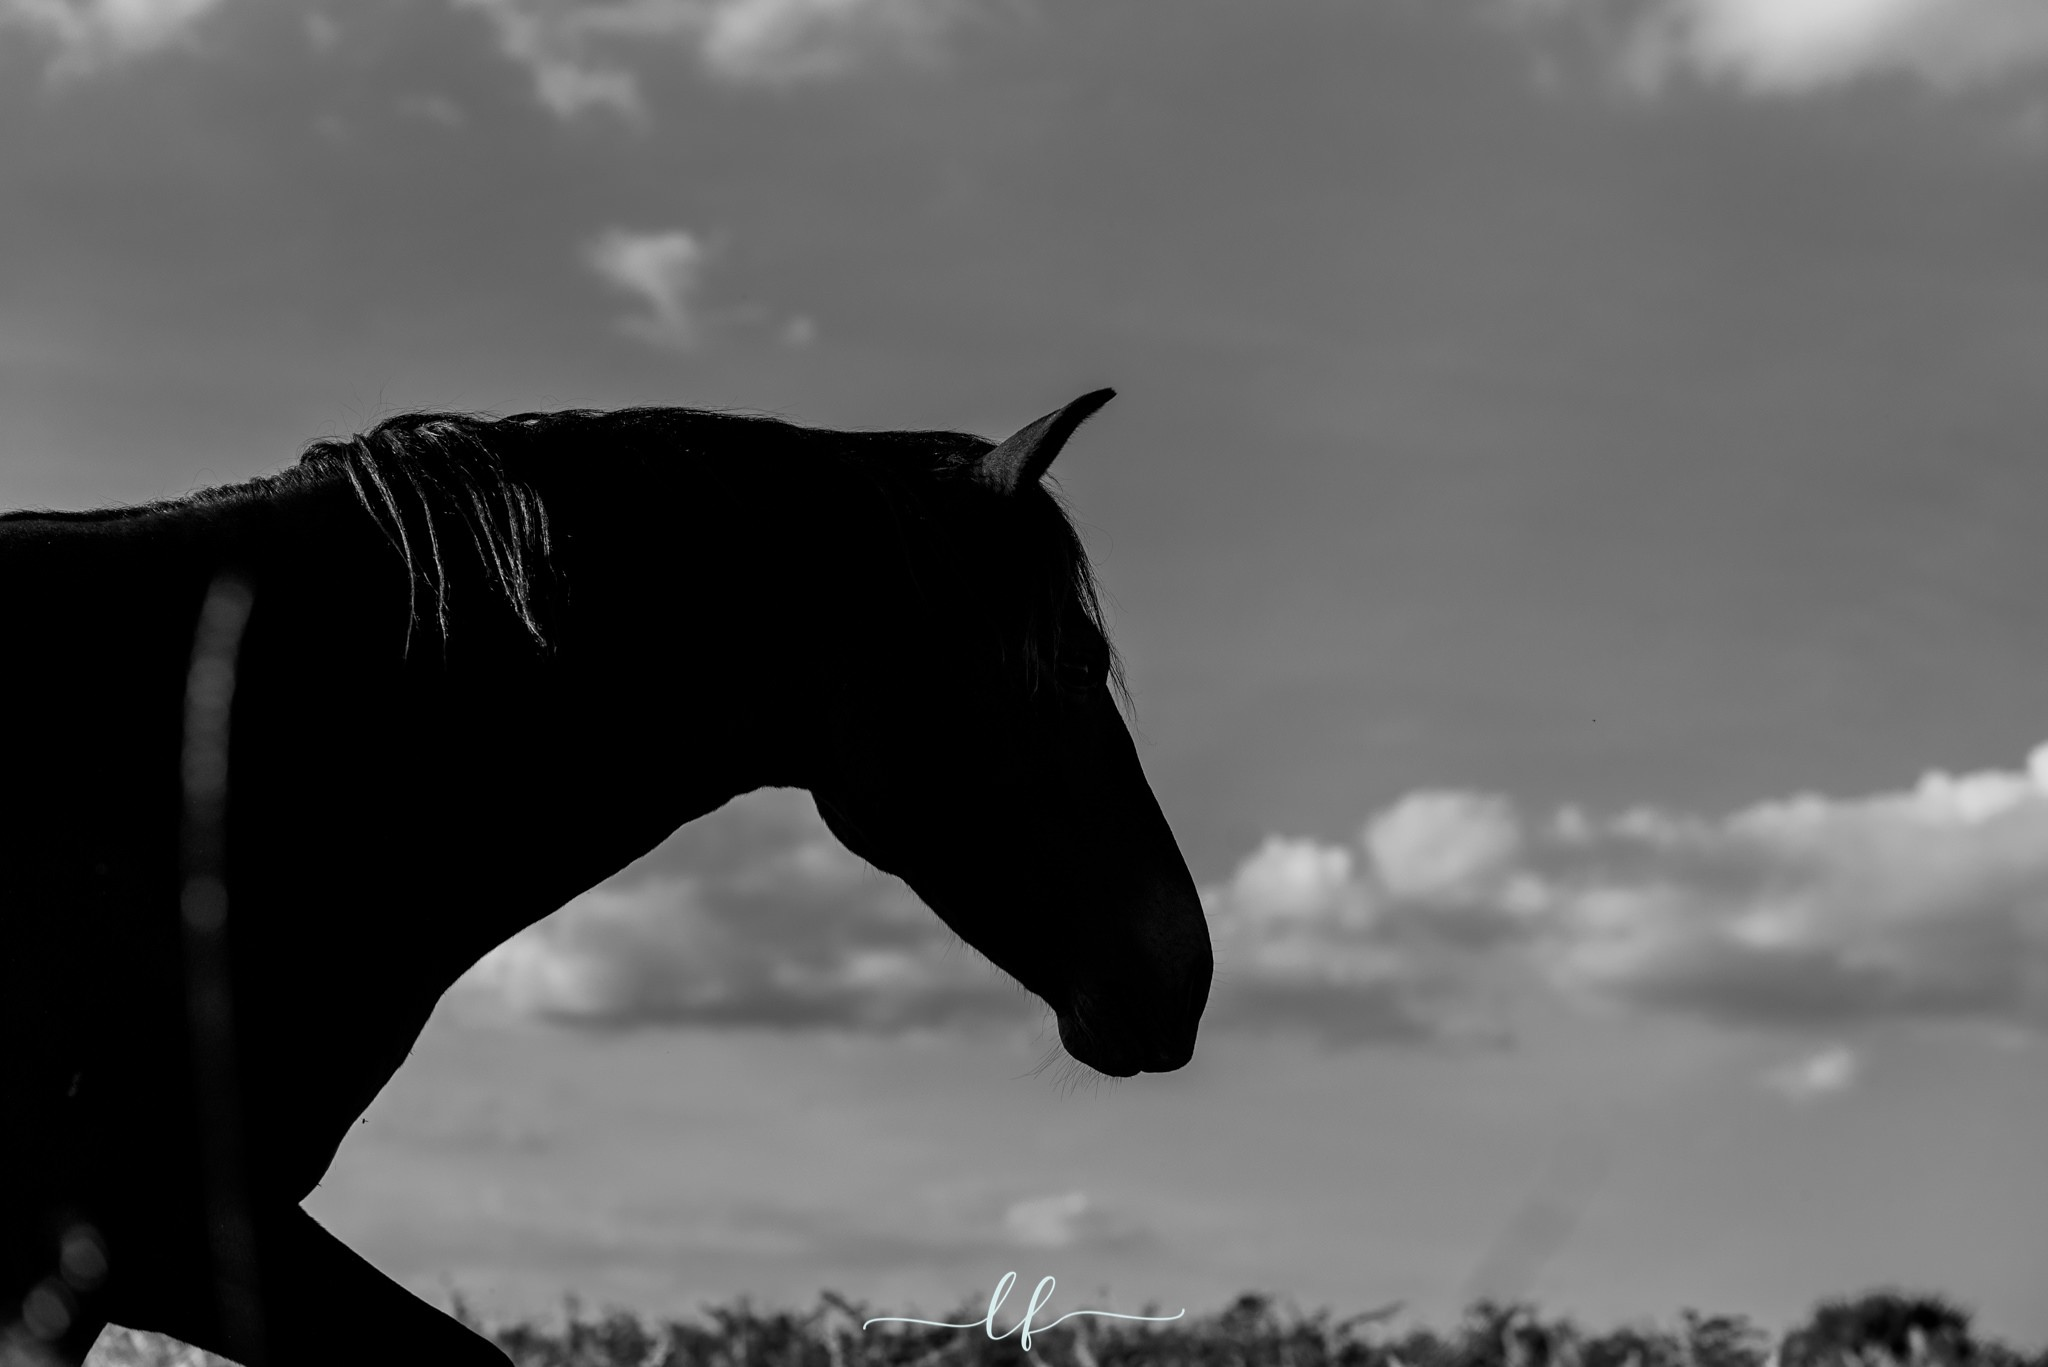 Silhouette of horse against clouds and grey sky